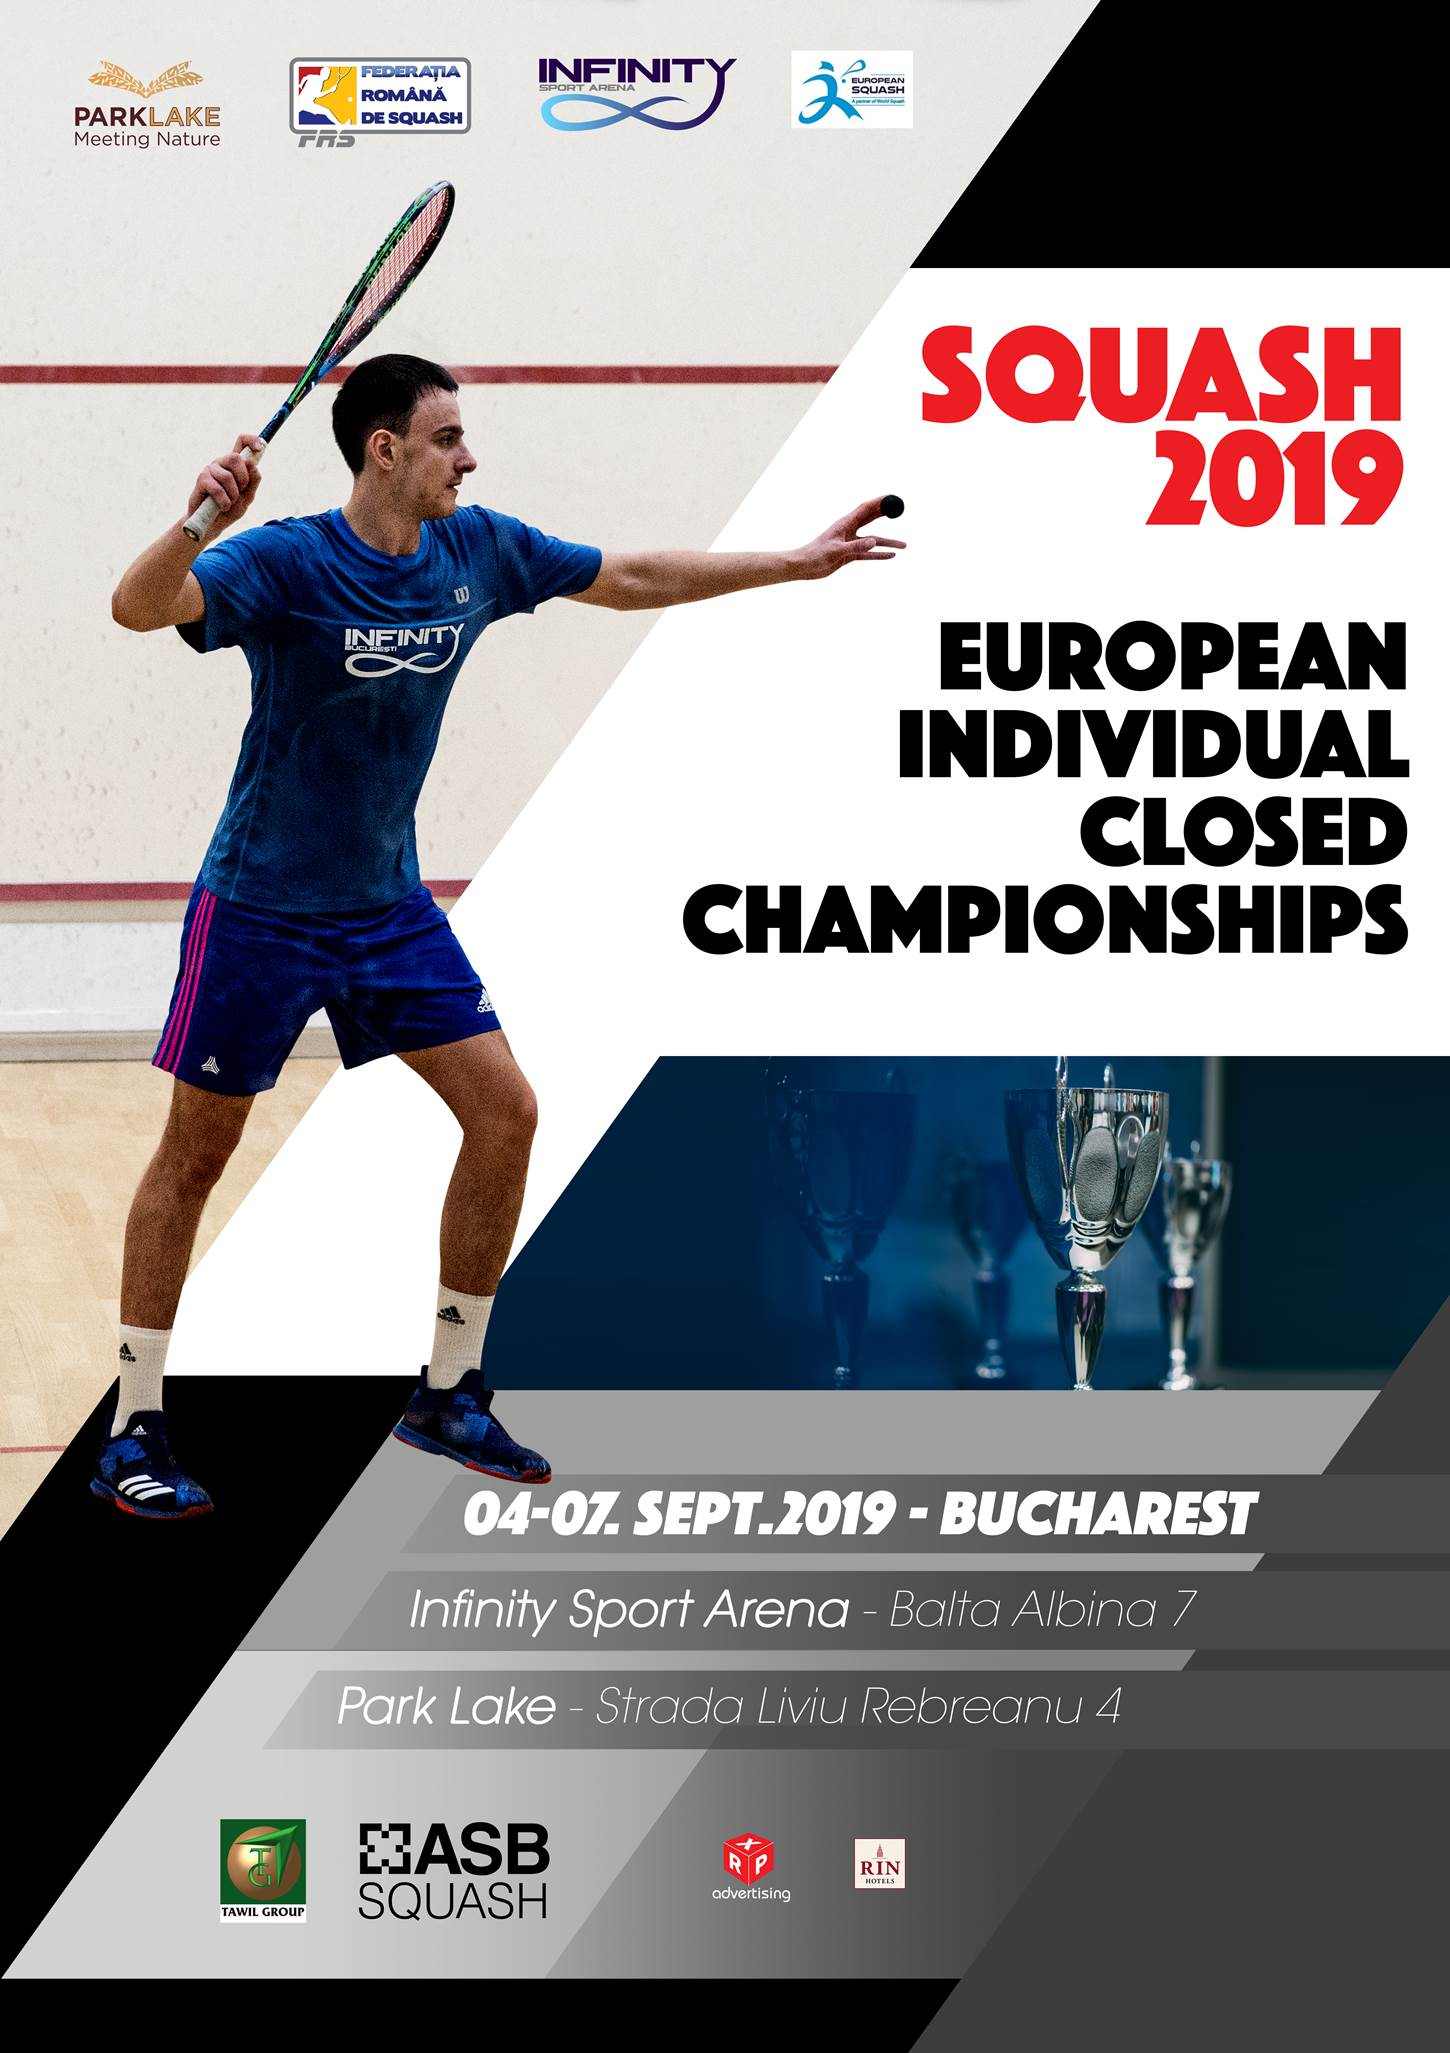 European Individual Closed Championships 2019